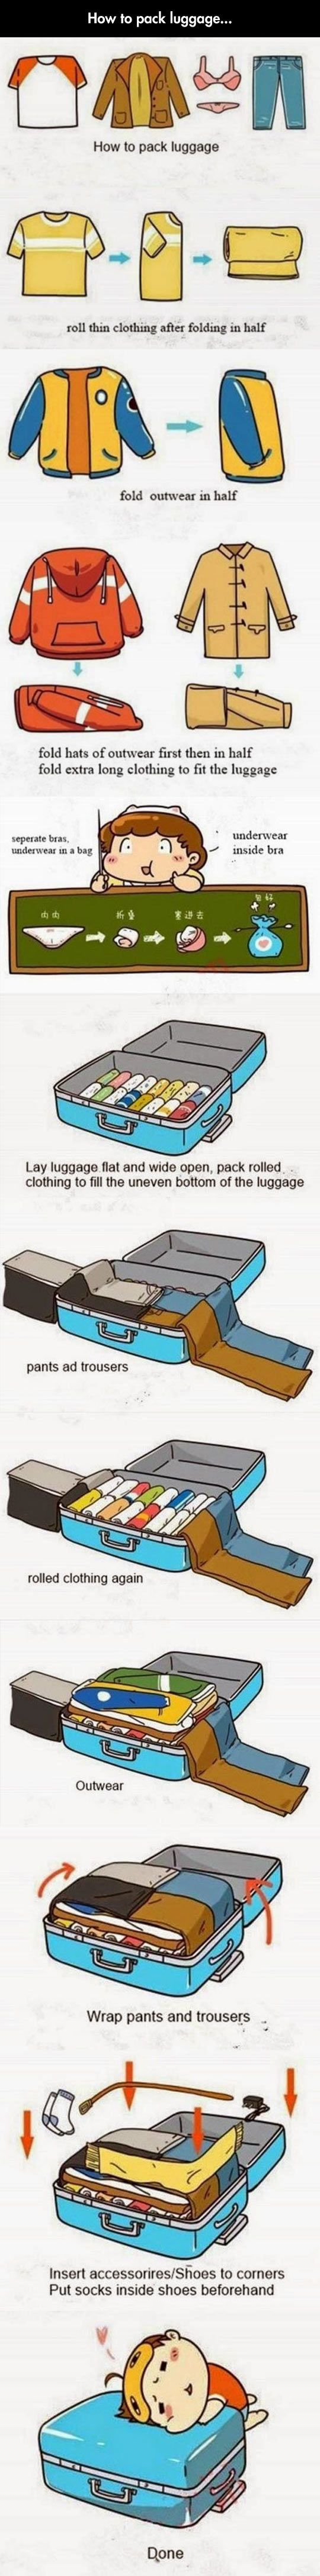 Learn How To Pack Luggage Properly - The Meta Picture